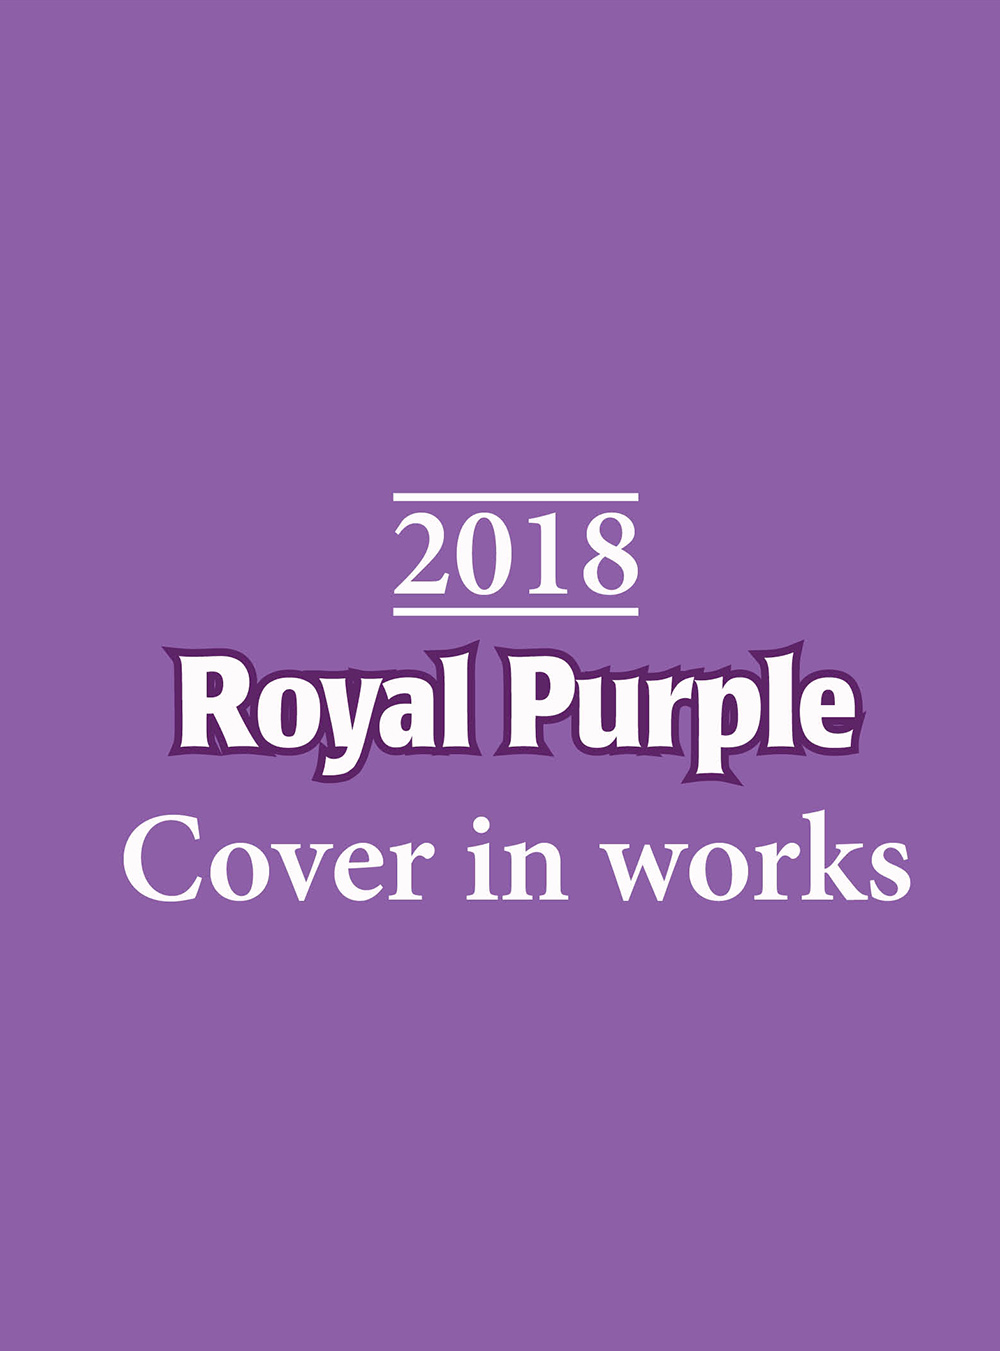 2018 Royal Purple